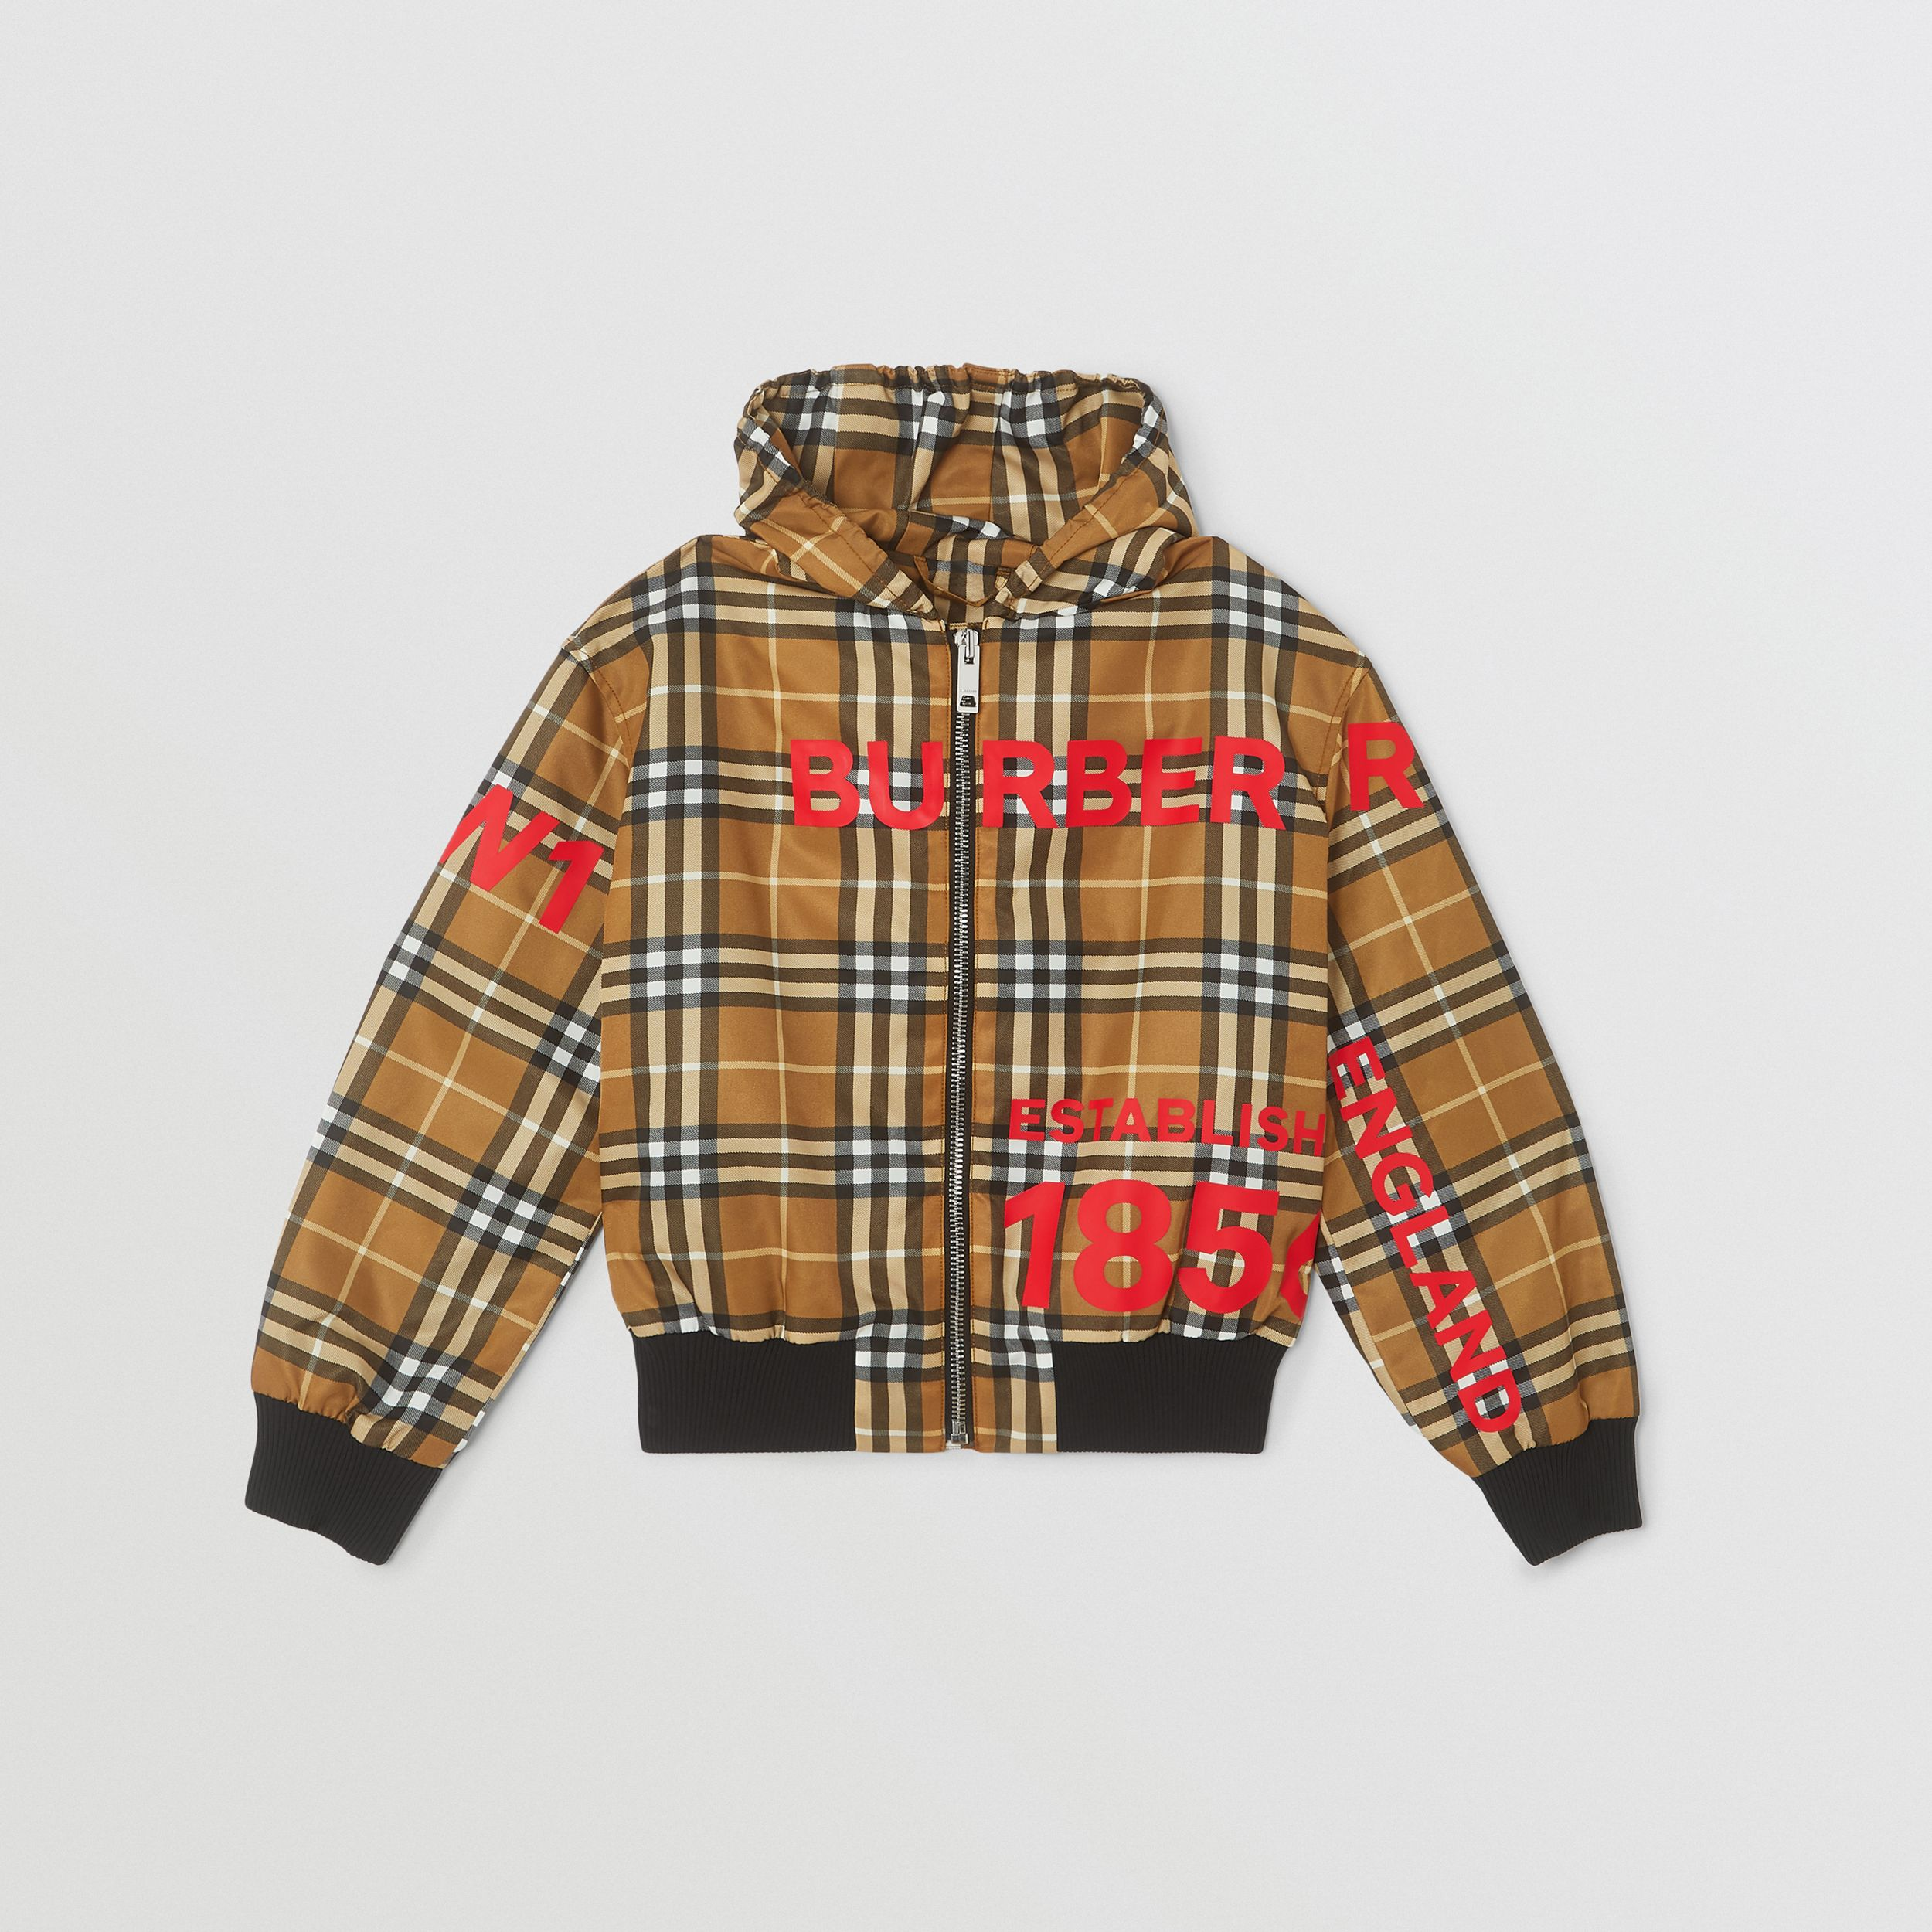 Horseferry Print Check Lightweight Hooded Jacket in Warm Walnut | Burberry - 1